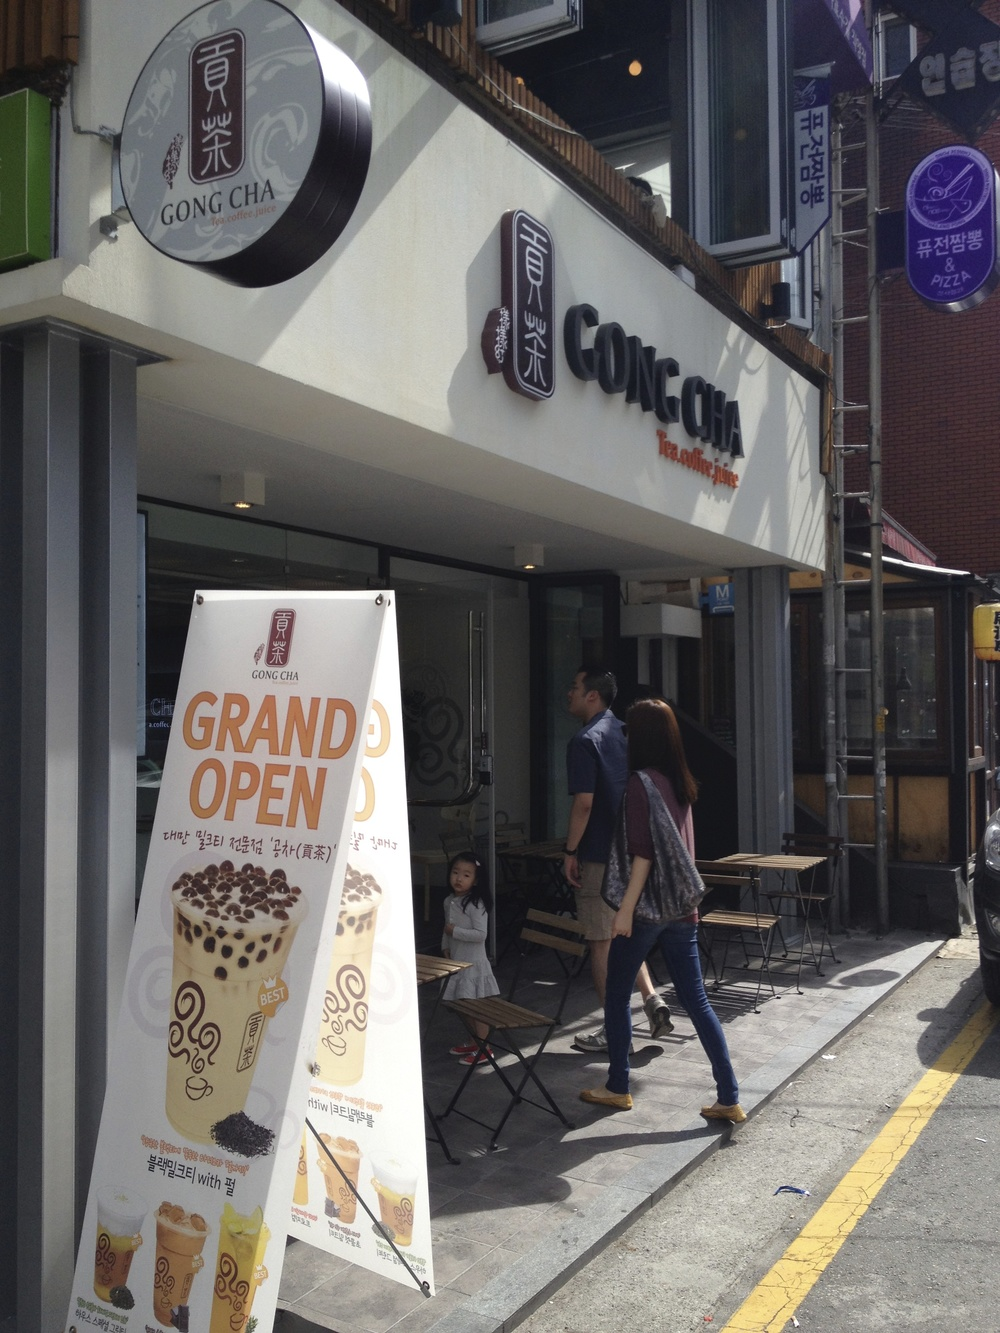 There are GongCha's opening everywhere overnight in and around Seoul! I swear every time I turn around there is another one that just opened!